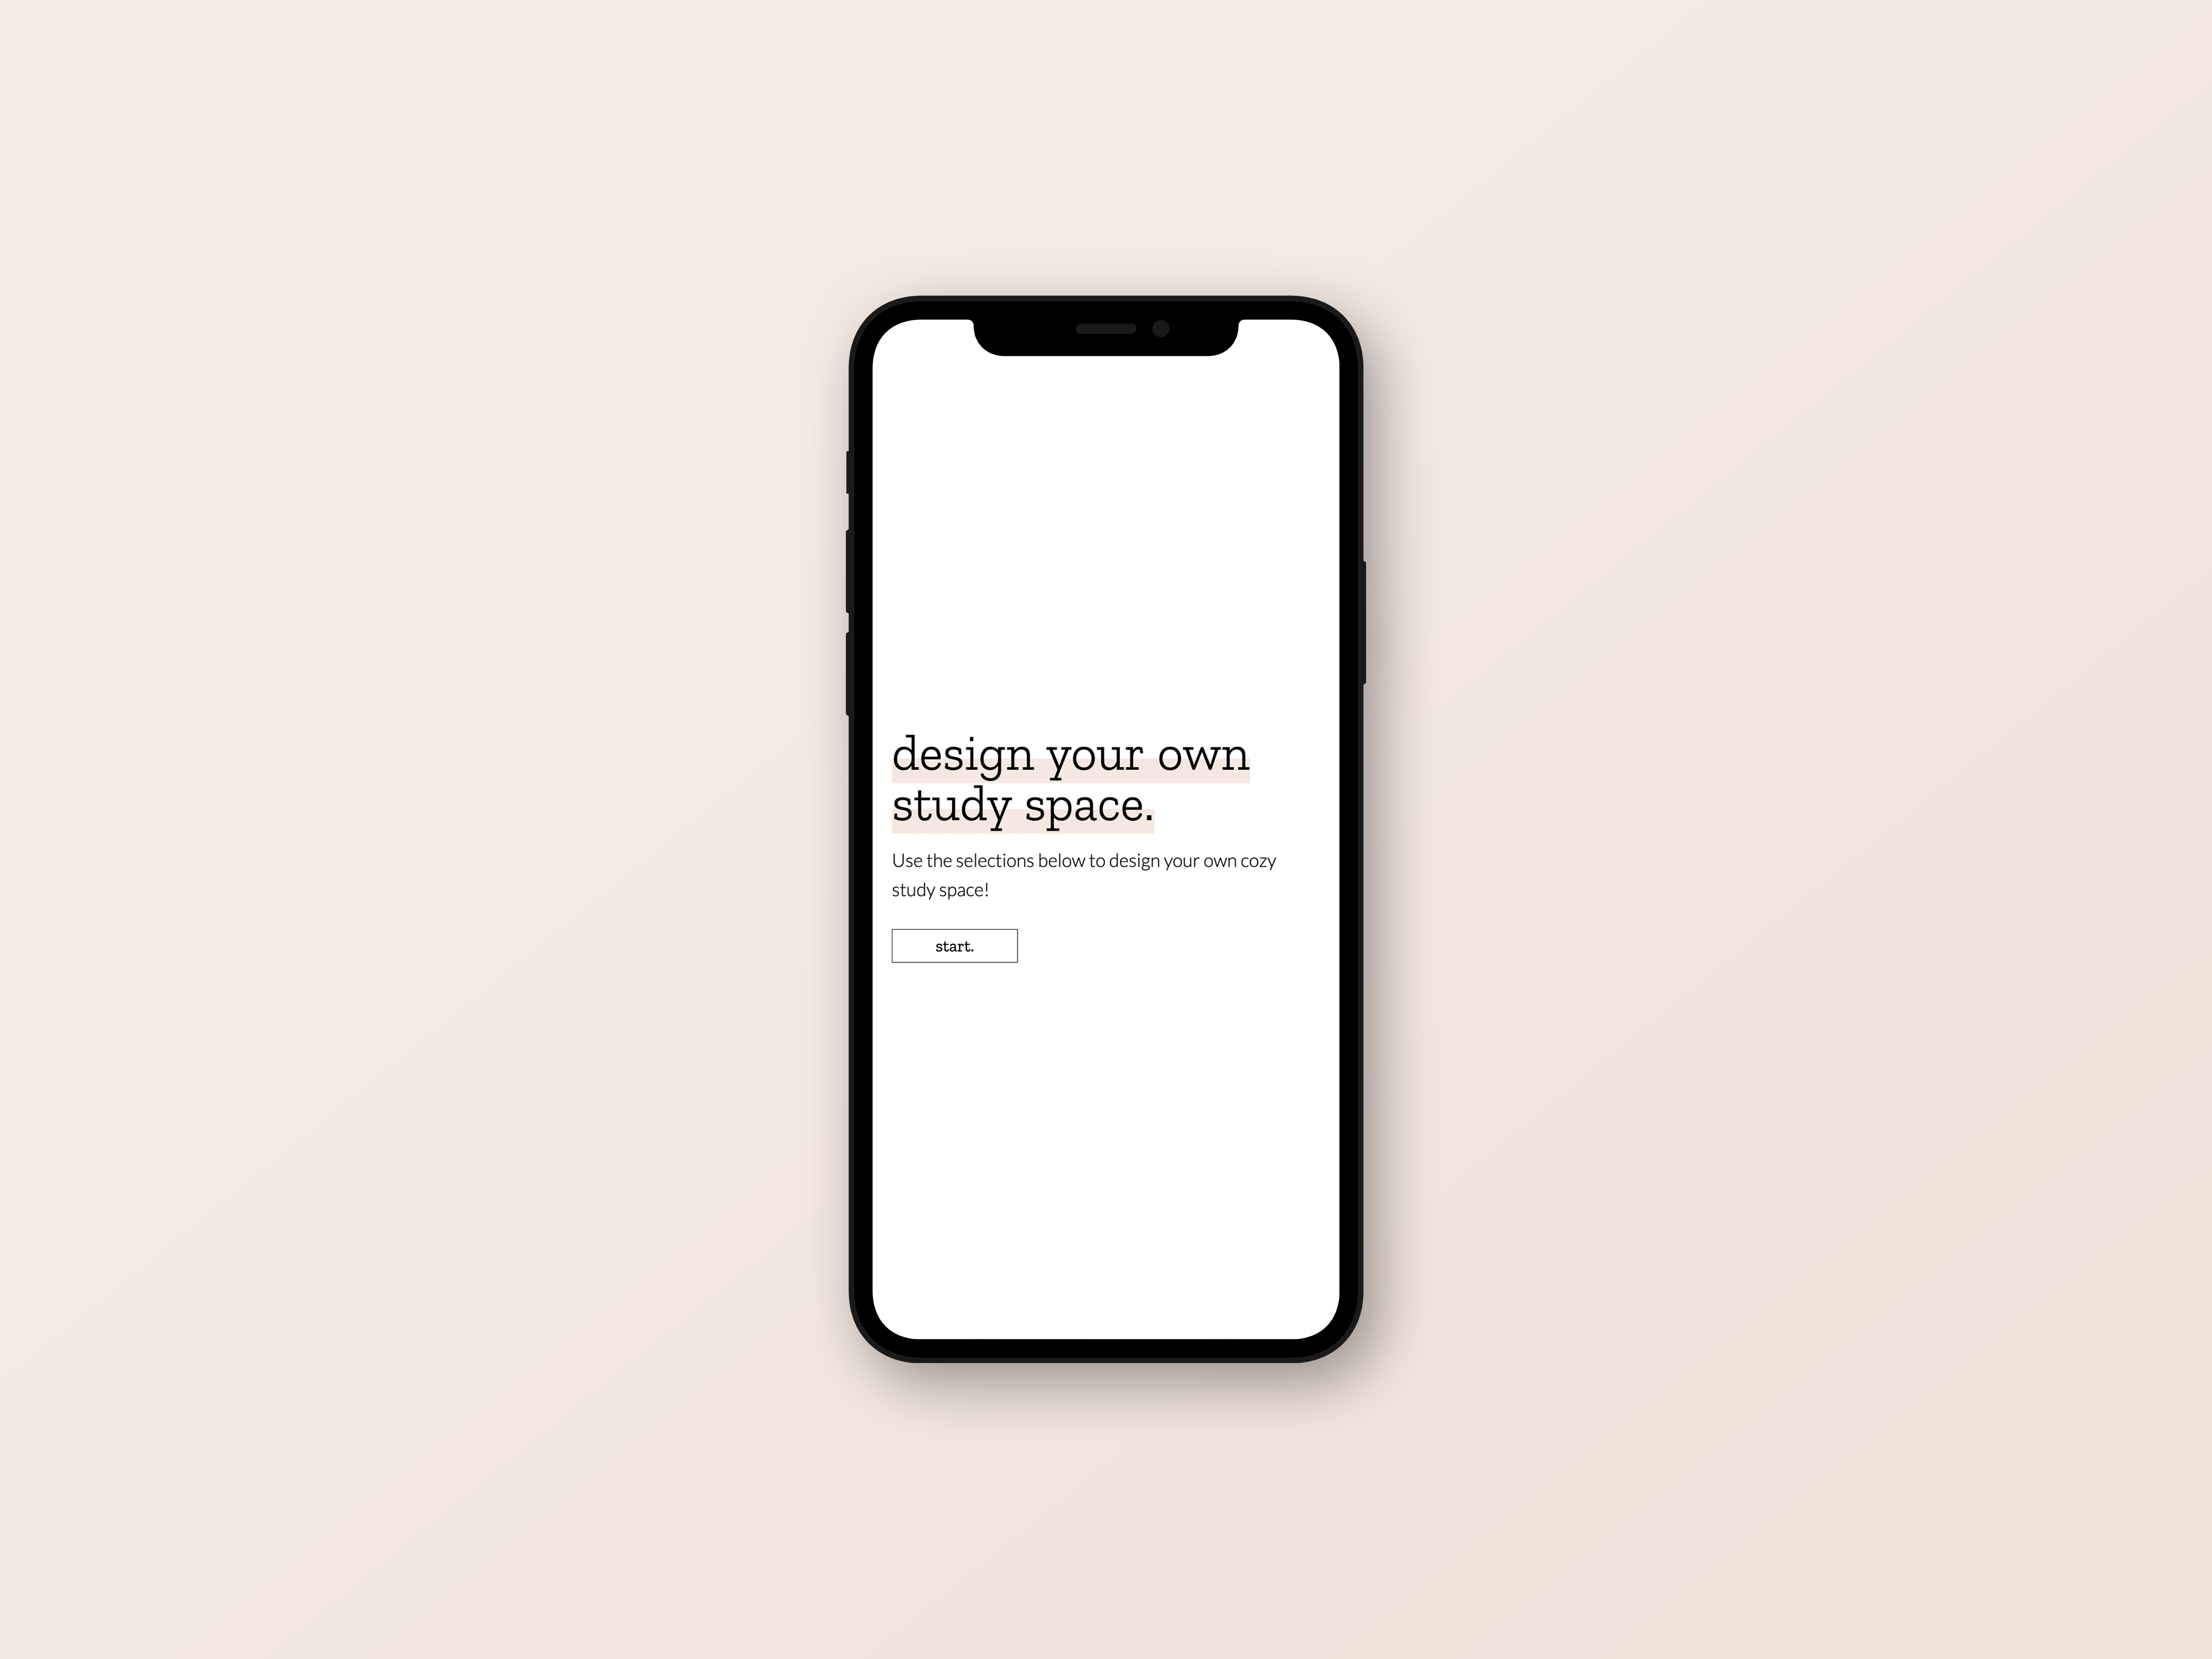 Design a Study Space page on an iPhone screen